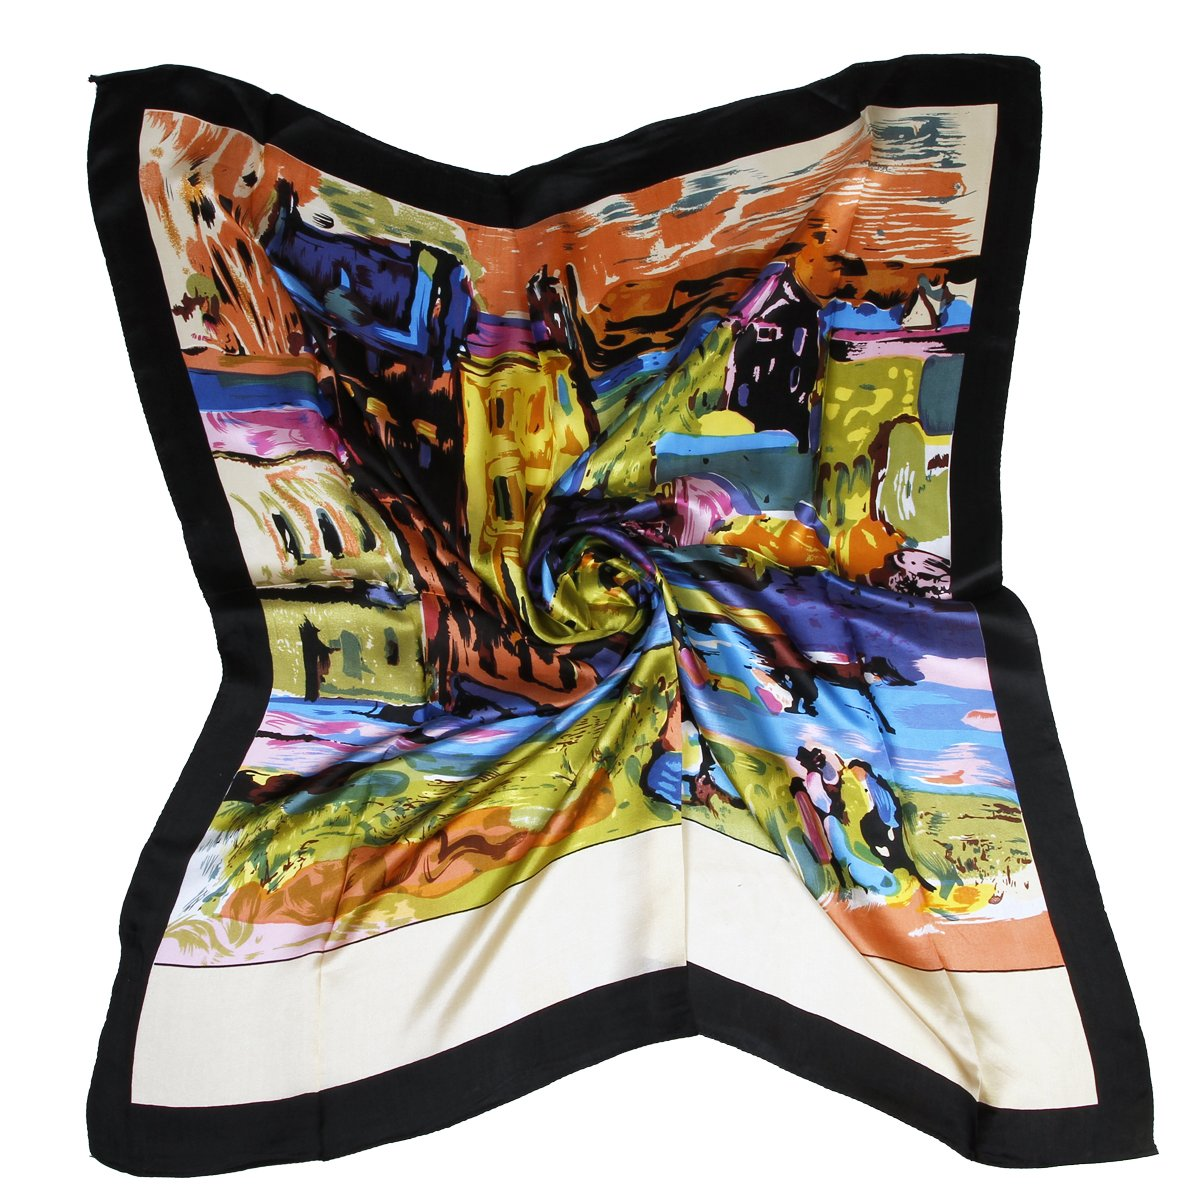 ETSYG 32'' Silk Scarf Women's Oil Painting House Pattern Large Square Satin Headscarf Headdress